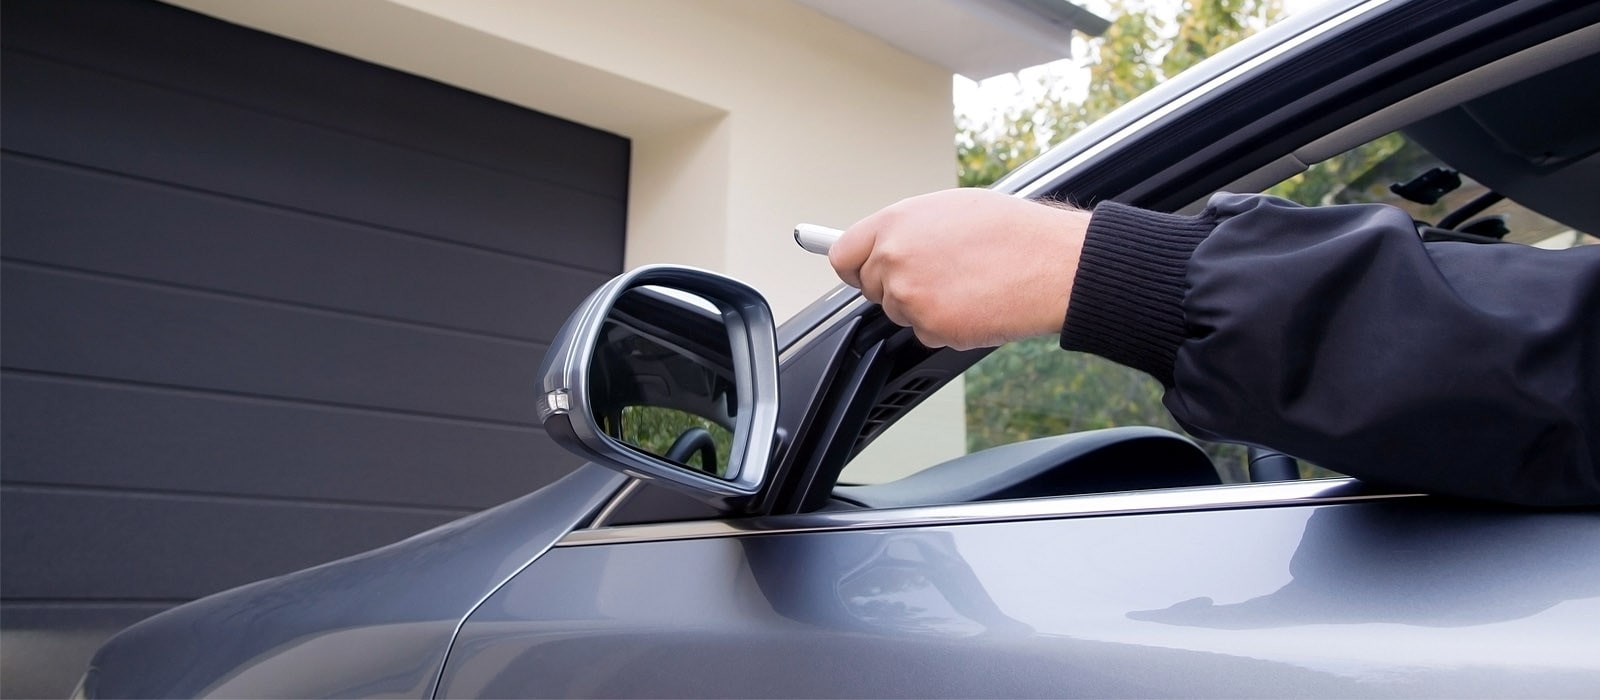 15 S C Garage Door Opener Repair Covering Greater La Area